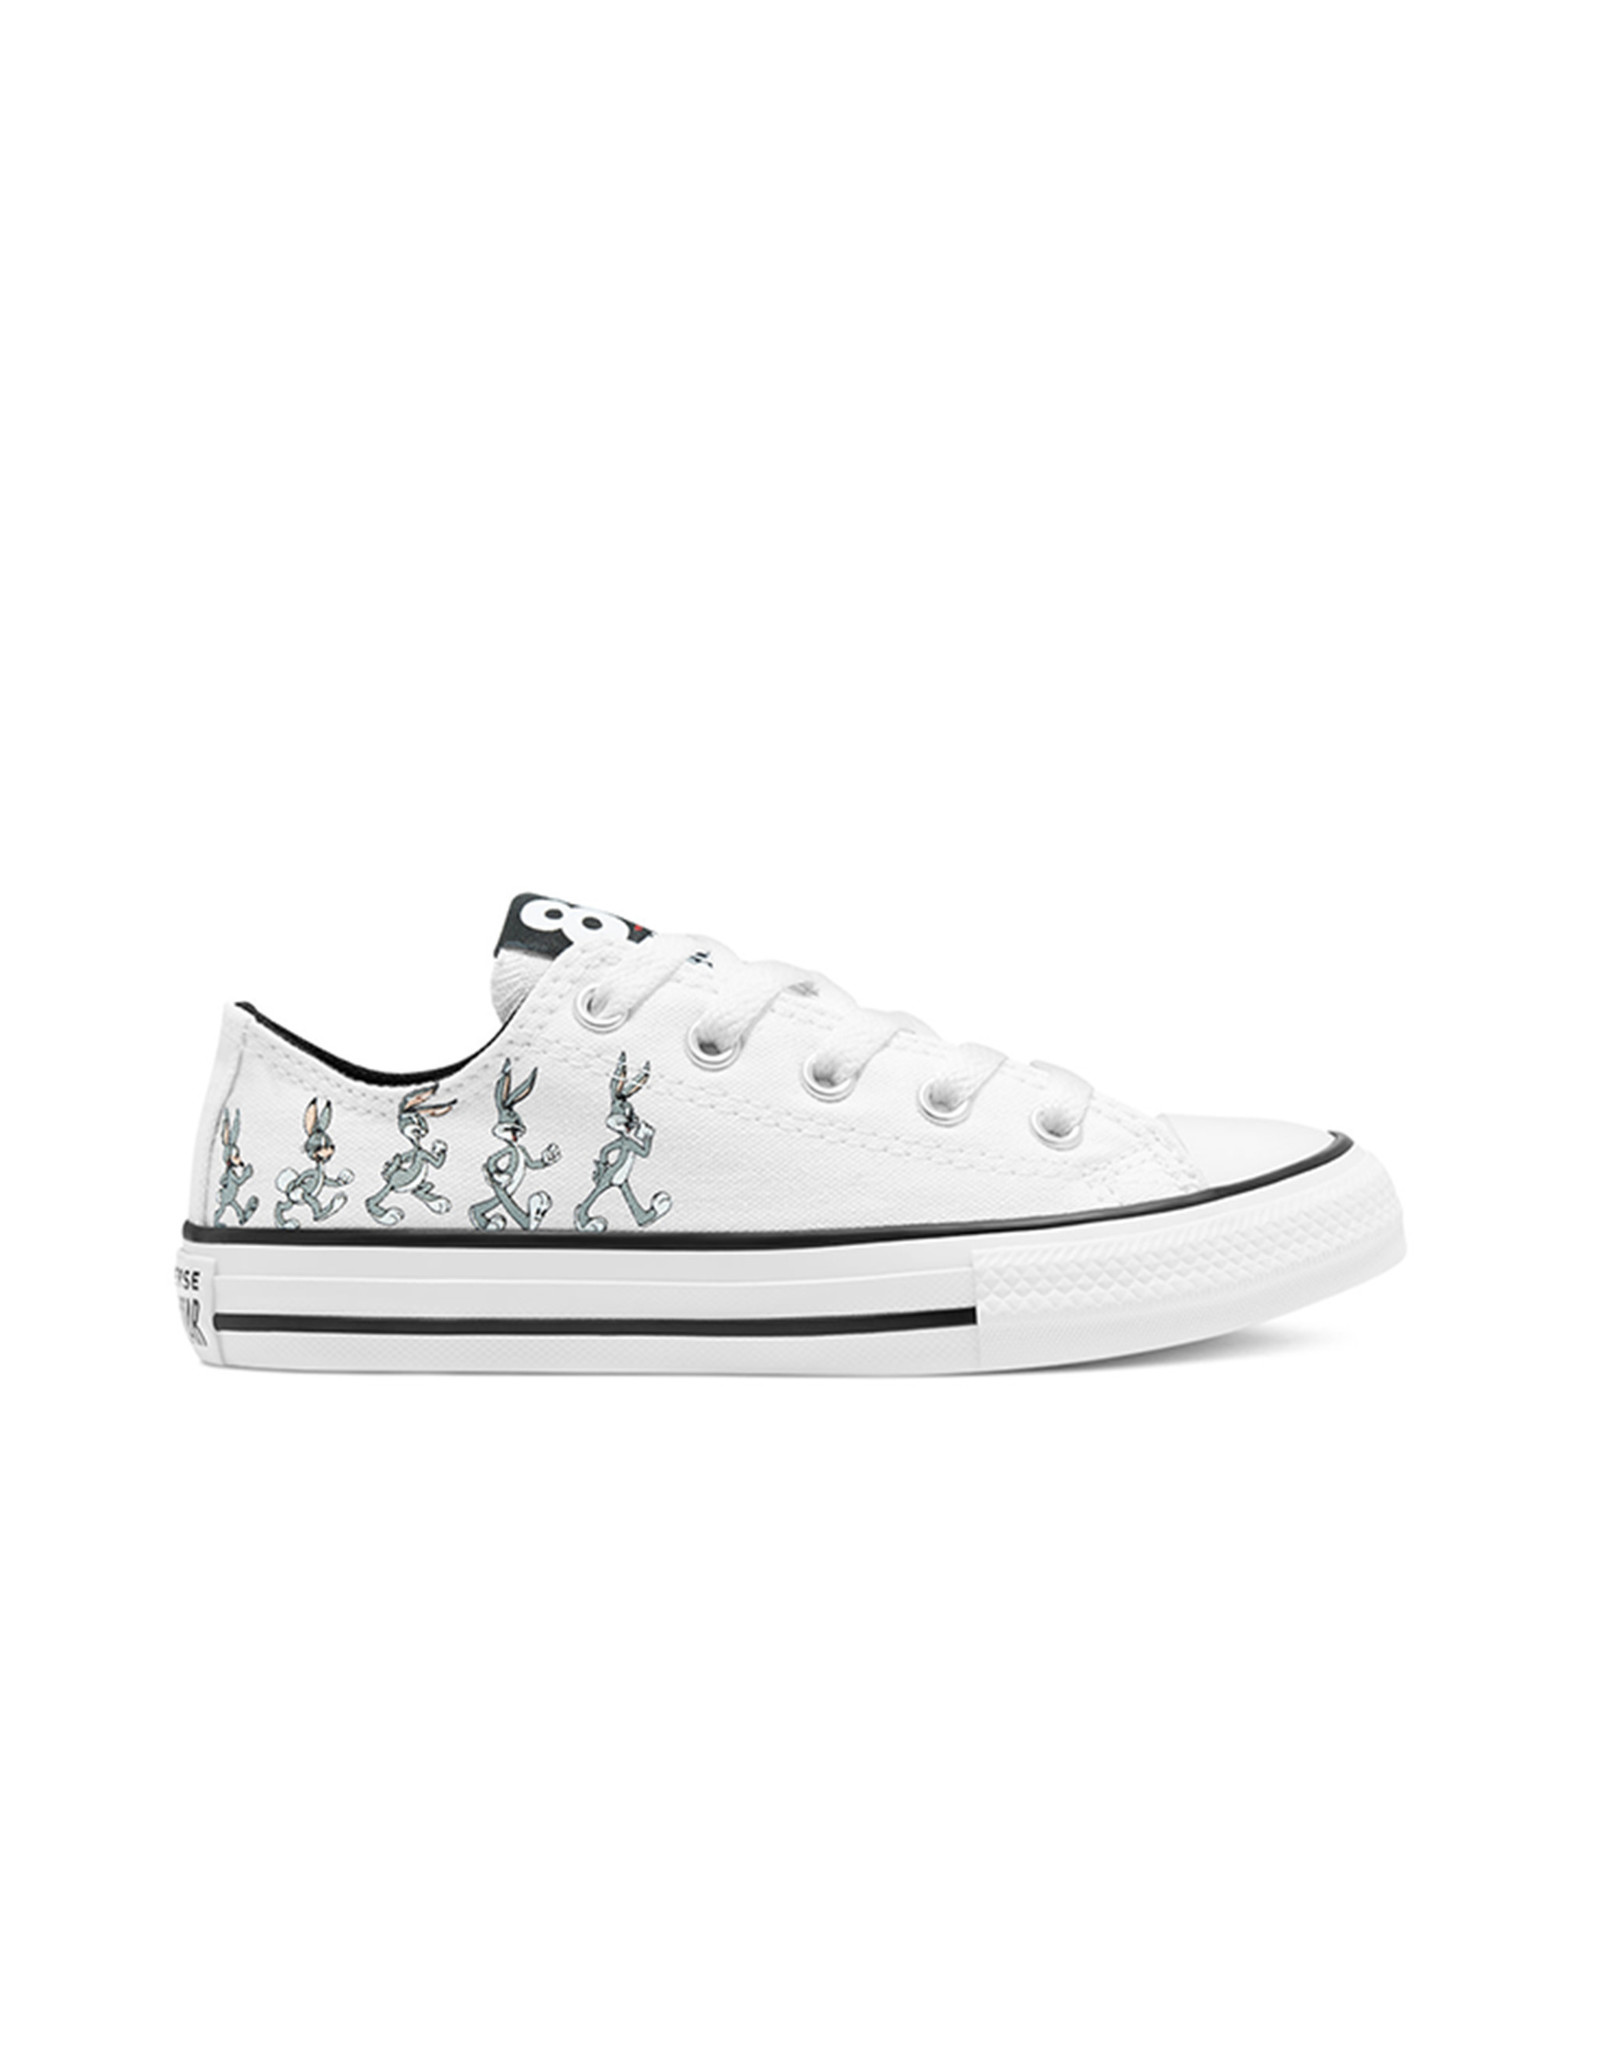 CONVERSE CHUCK TAYLOR OX BUGS BUNNY GREY/WHITE/BLACK CABUGS-369229C